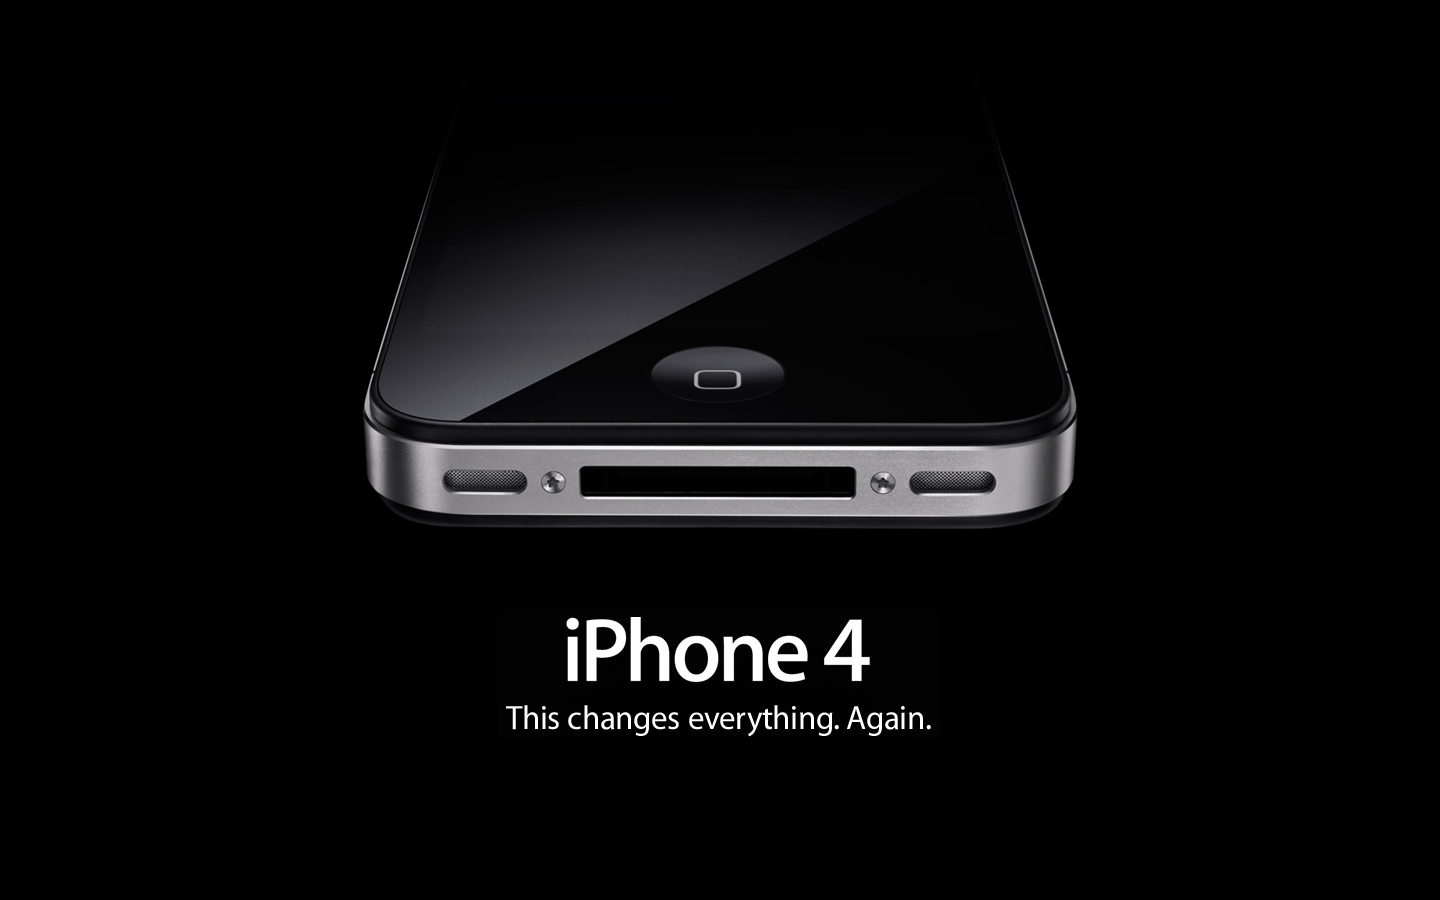 New iPhone 21 Wallpapers on WallpaperDog